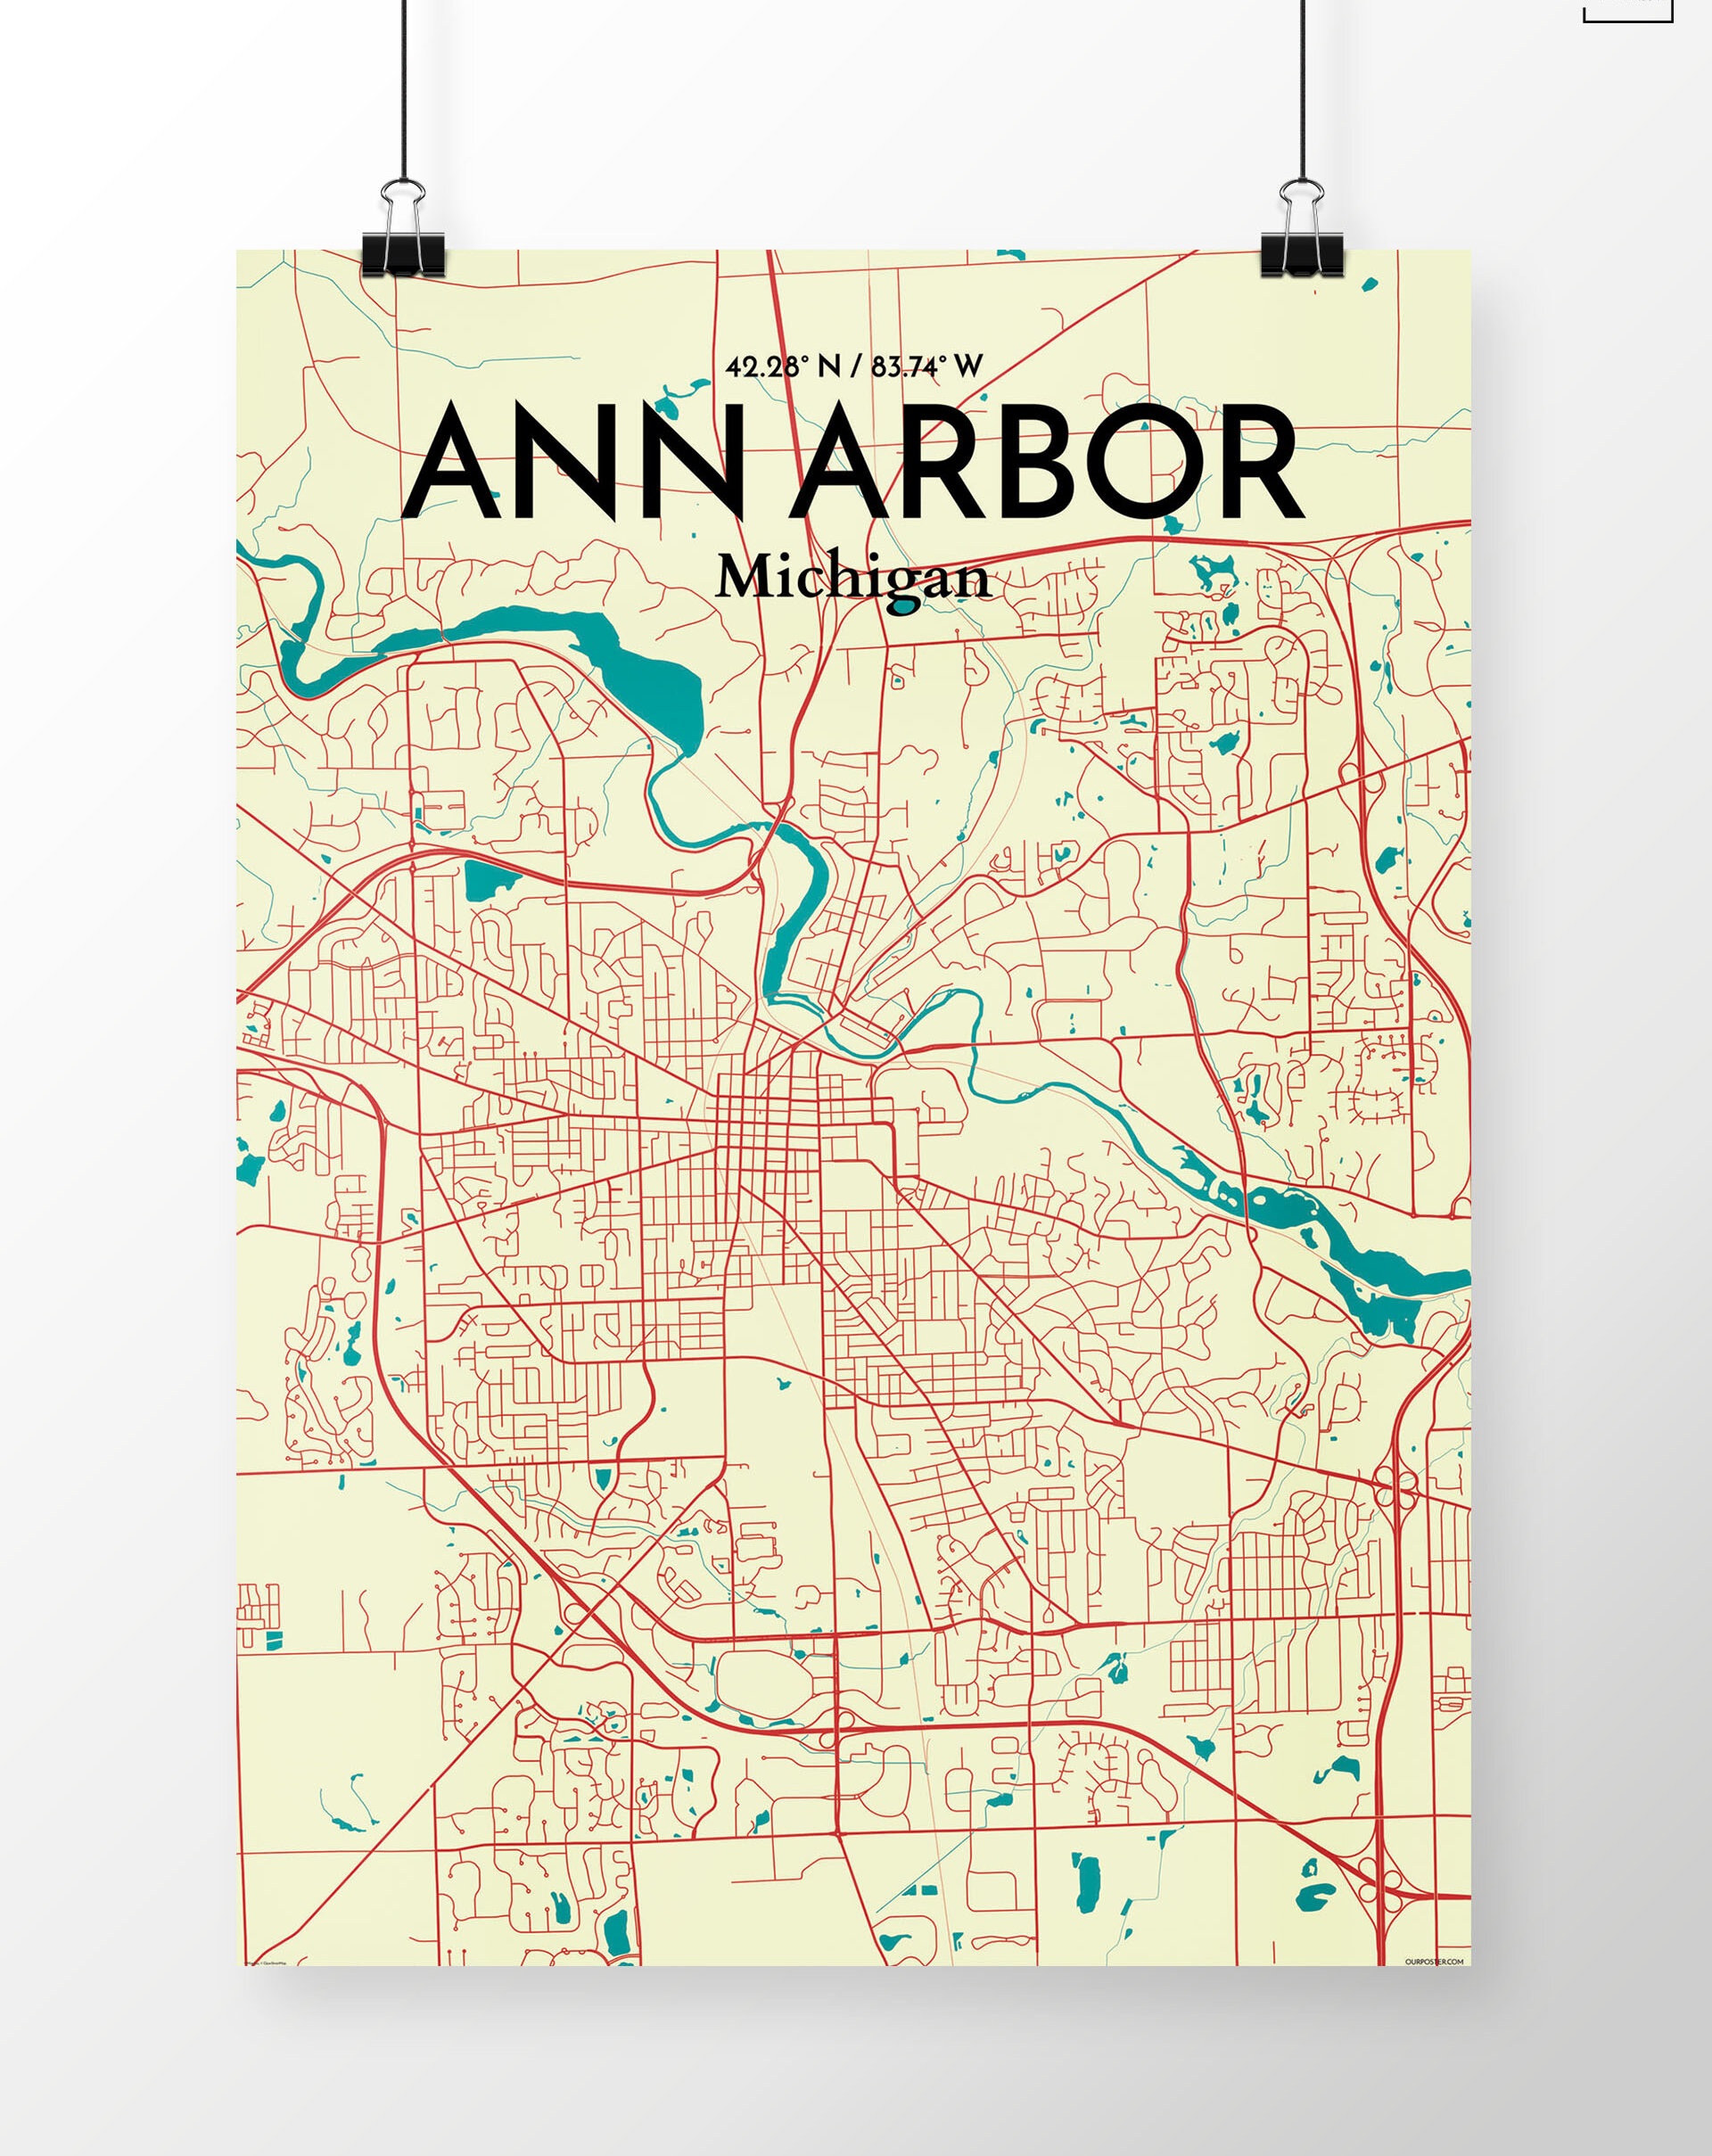 'Ann Arbor City Map' Graphic Art Print Poster in Beige on map of michigan milford, map of michigan ithaca, map of michigan bay city, map of michigan taylor, map of michigan dundee, map of michigan holland, map of michigan utica, map of michigan owosso, map of michigan rochester, map of michigan south lyon, map of michigan canton, map of michigan alpena, map of michigan livonia, map of michigan new york, map of michigan northville, map of michigan wixom, map of michigan warren, map of michigan sleeping bear dunes, map of michigan garden city, map of michigan marquette,